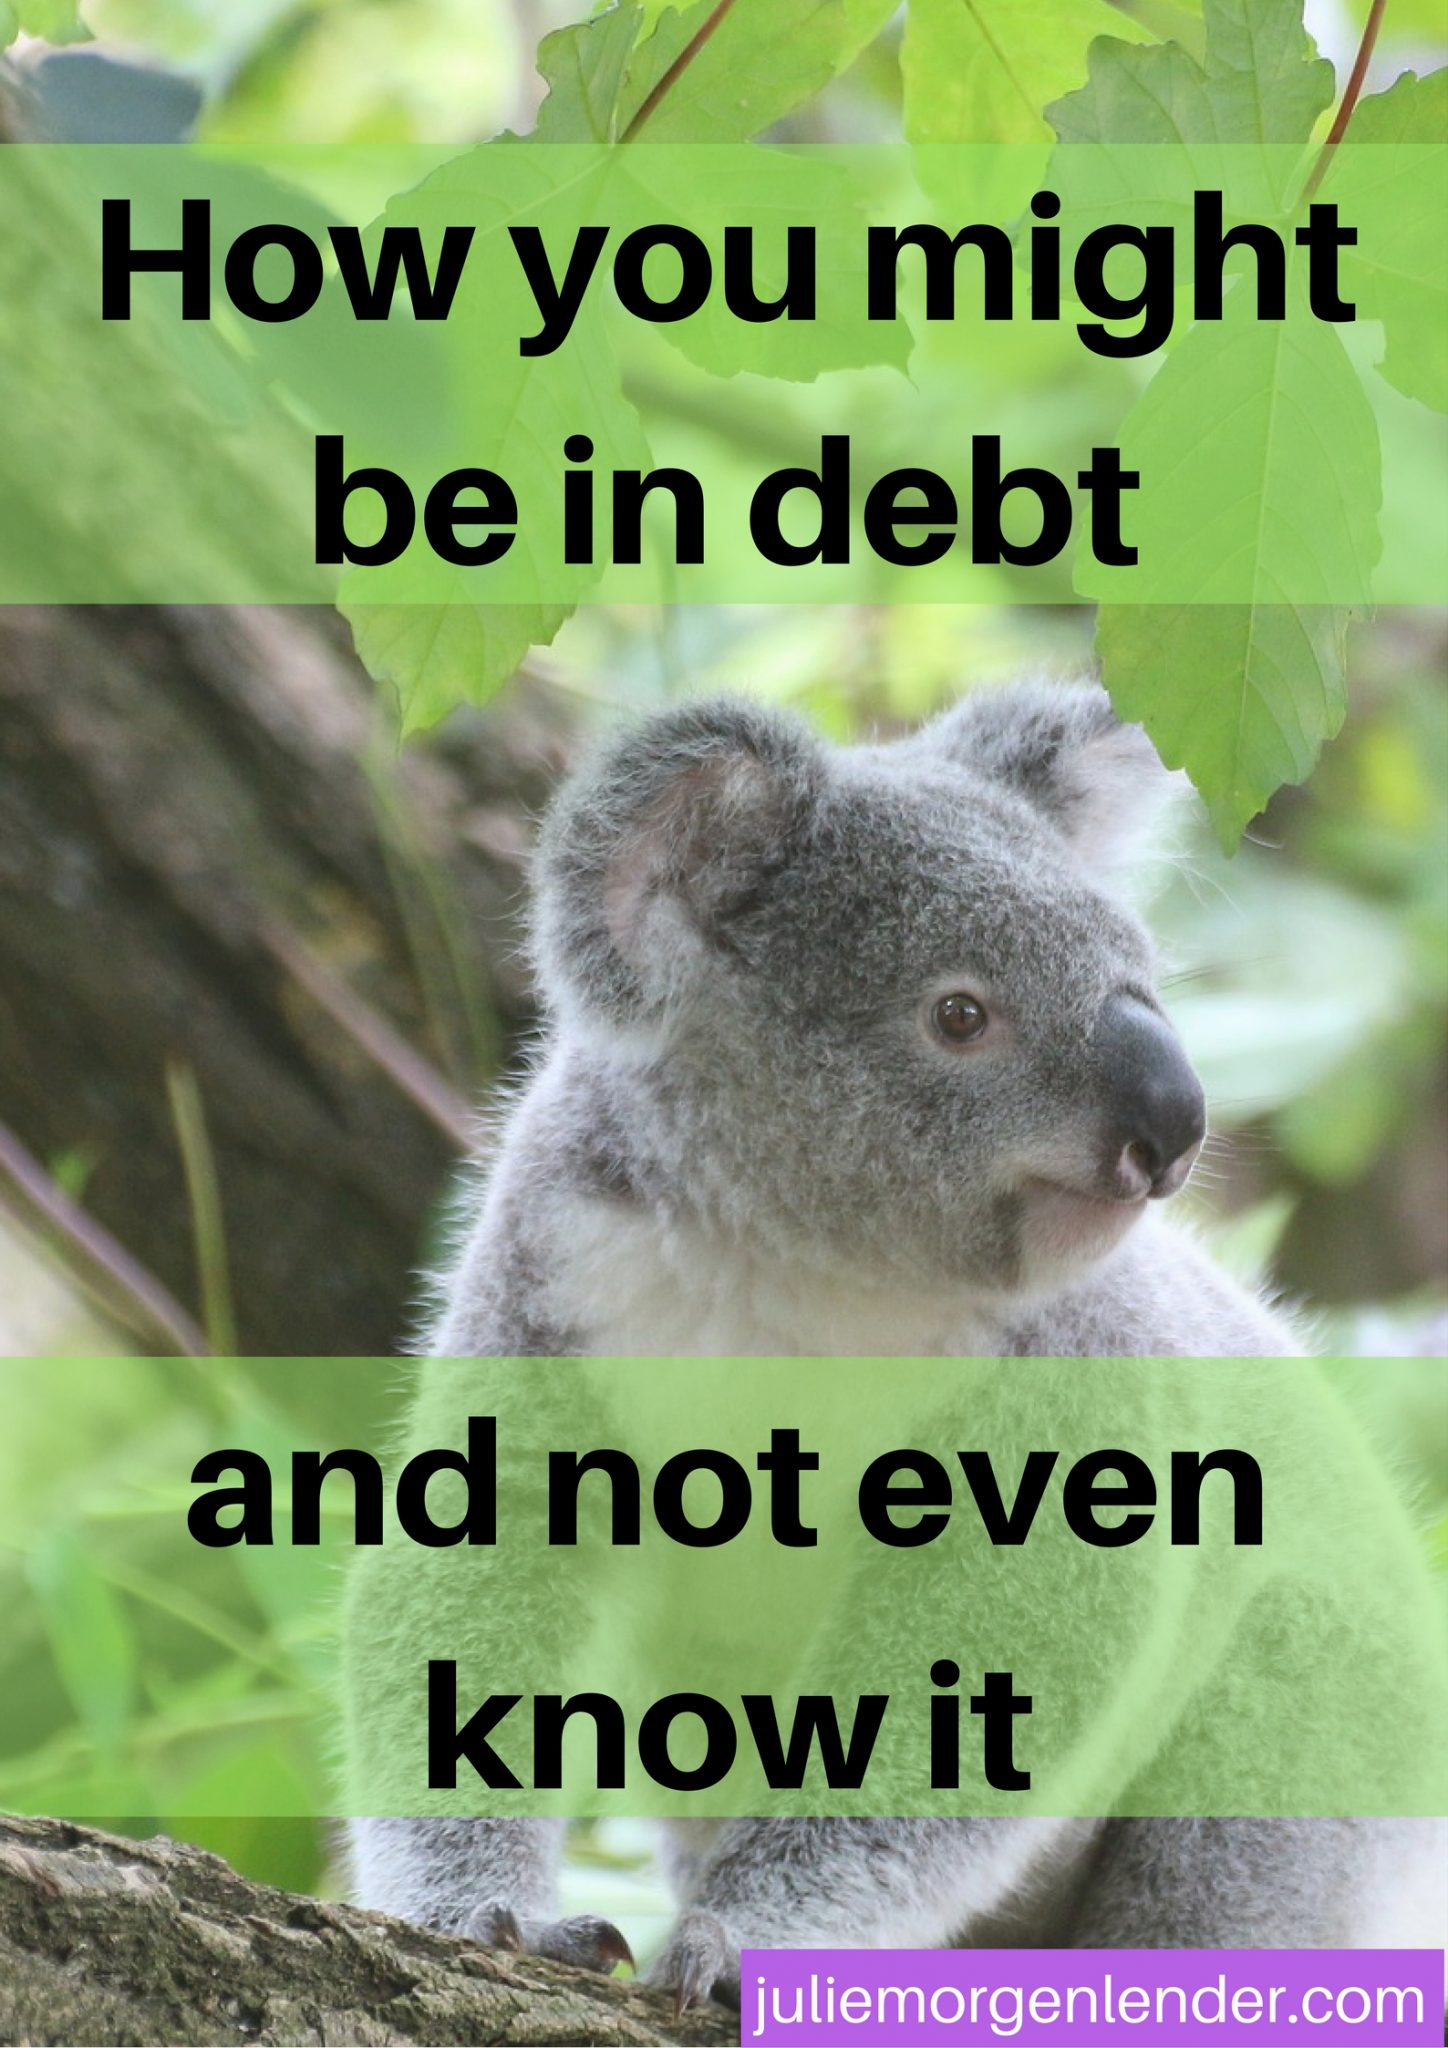 How you might be in debt and not even know it